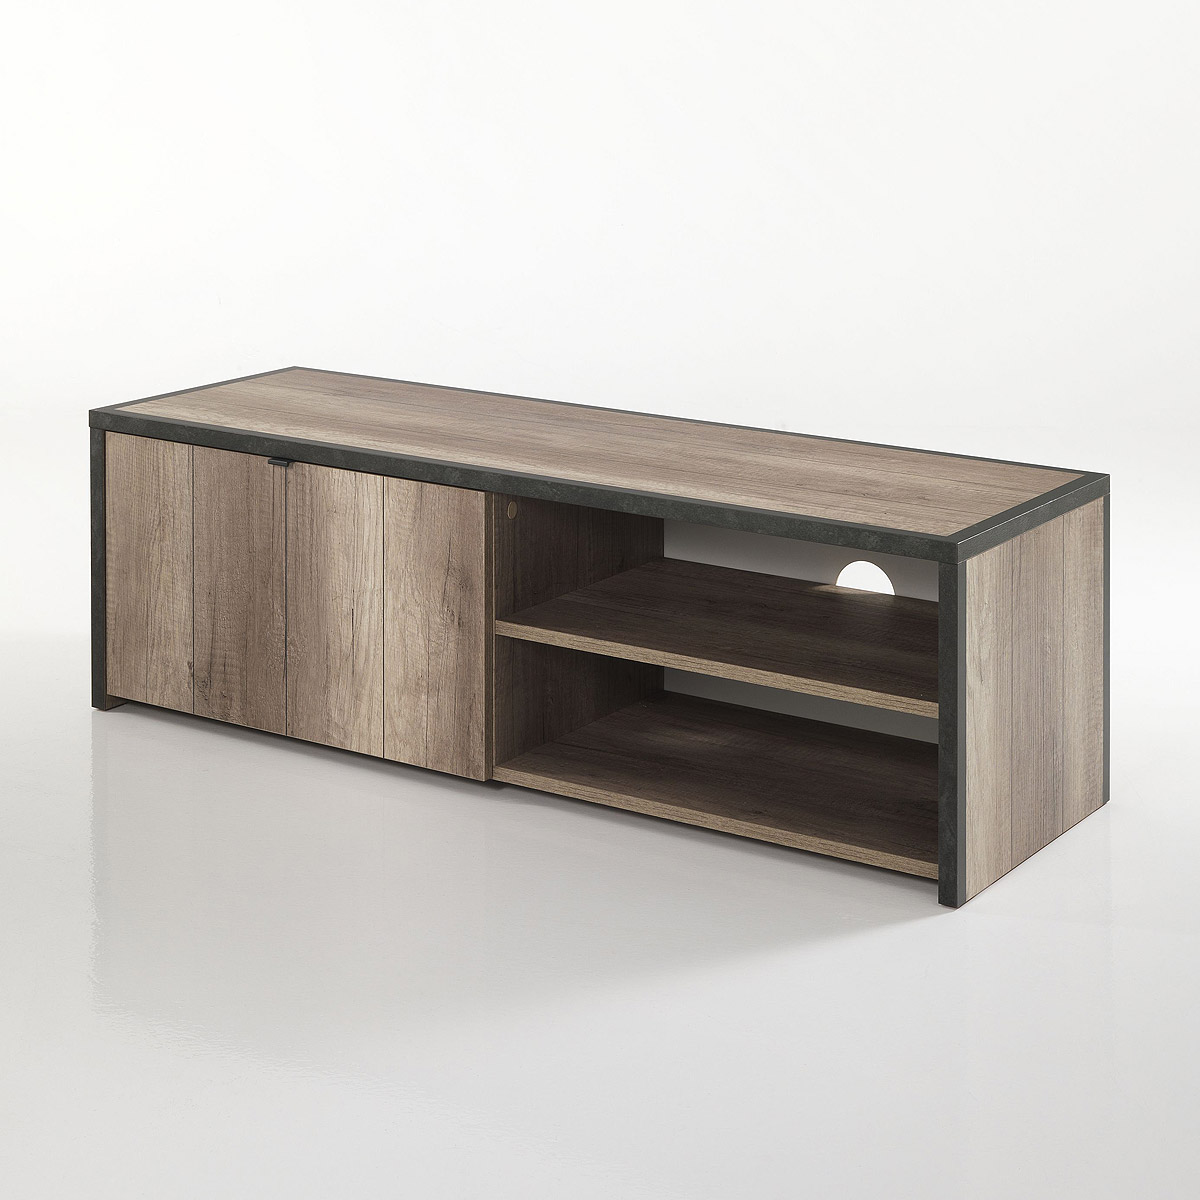 tv element tim lowboard kommode tv board eiche sanremo. Black Bedroom Furniture Sets. Home Design Ideas